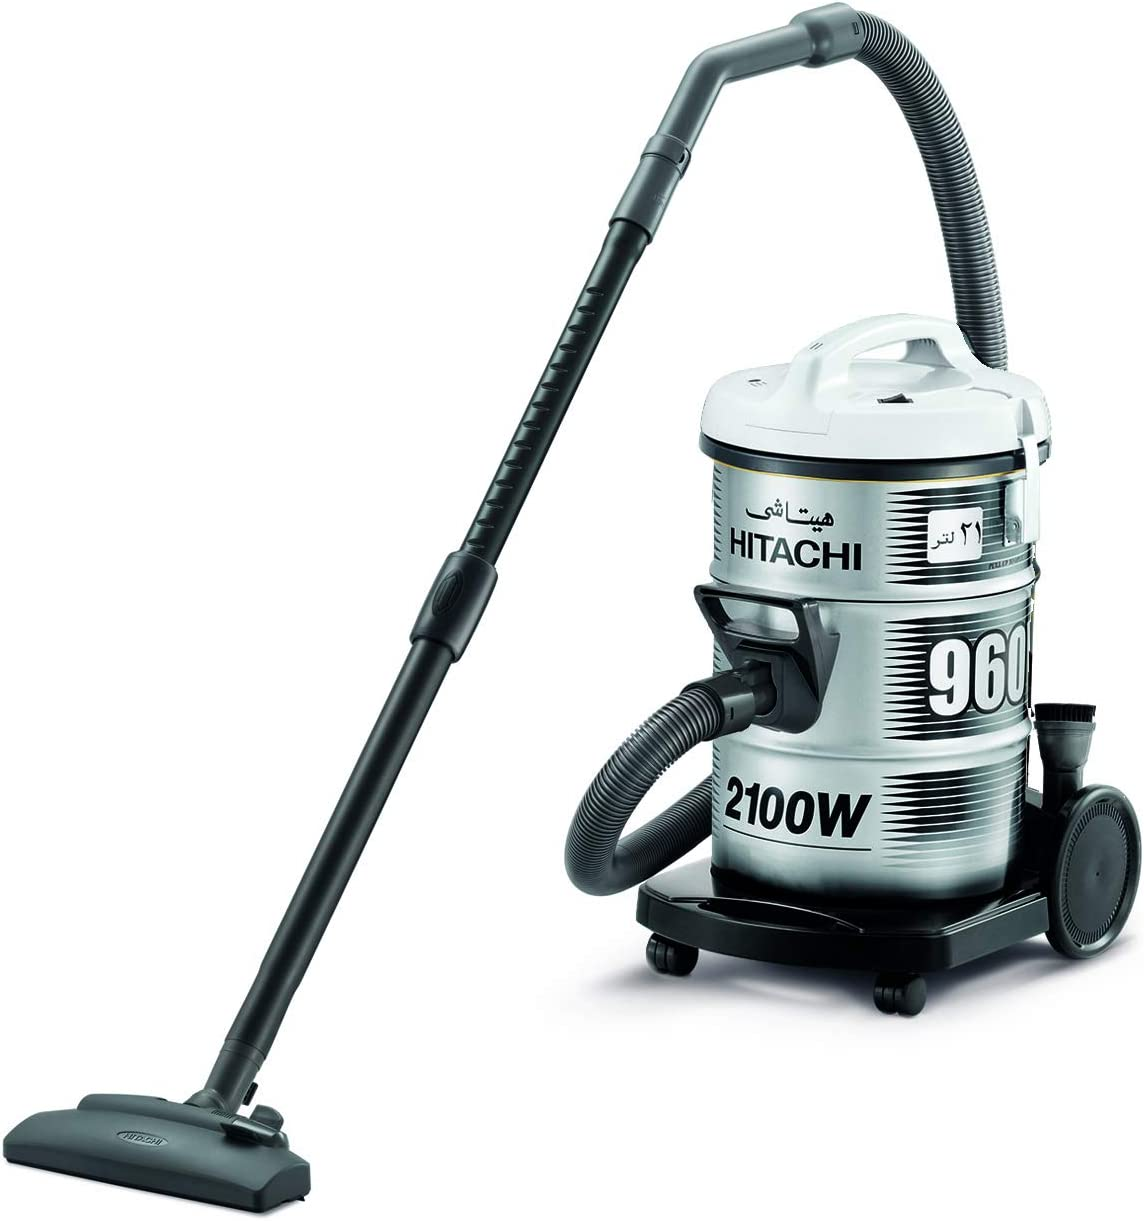 HITACHI Vacuum Cleaner, 2100W,21L 220/50-60HZ,Gray - CV960Y-SS220-PG